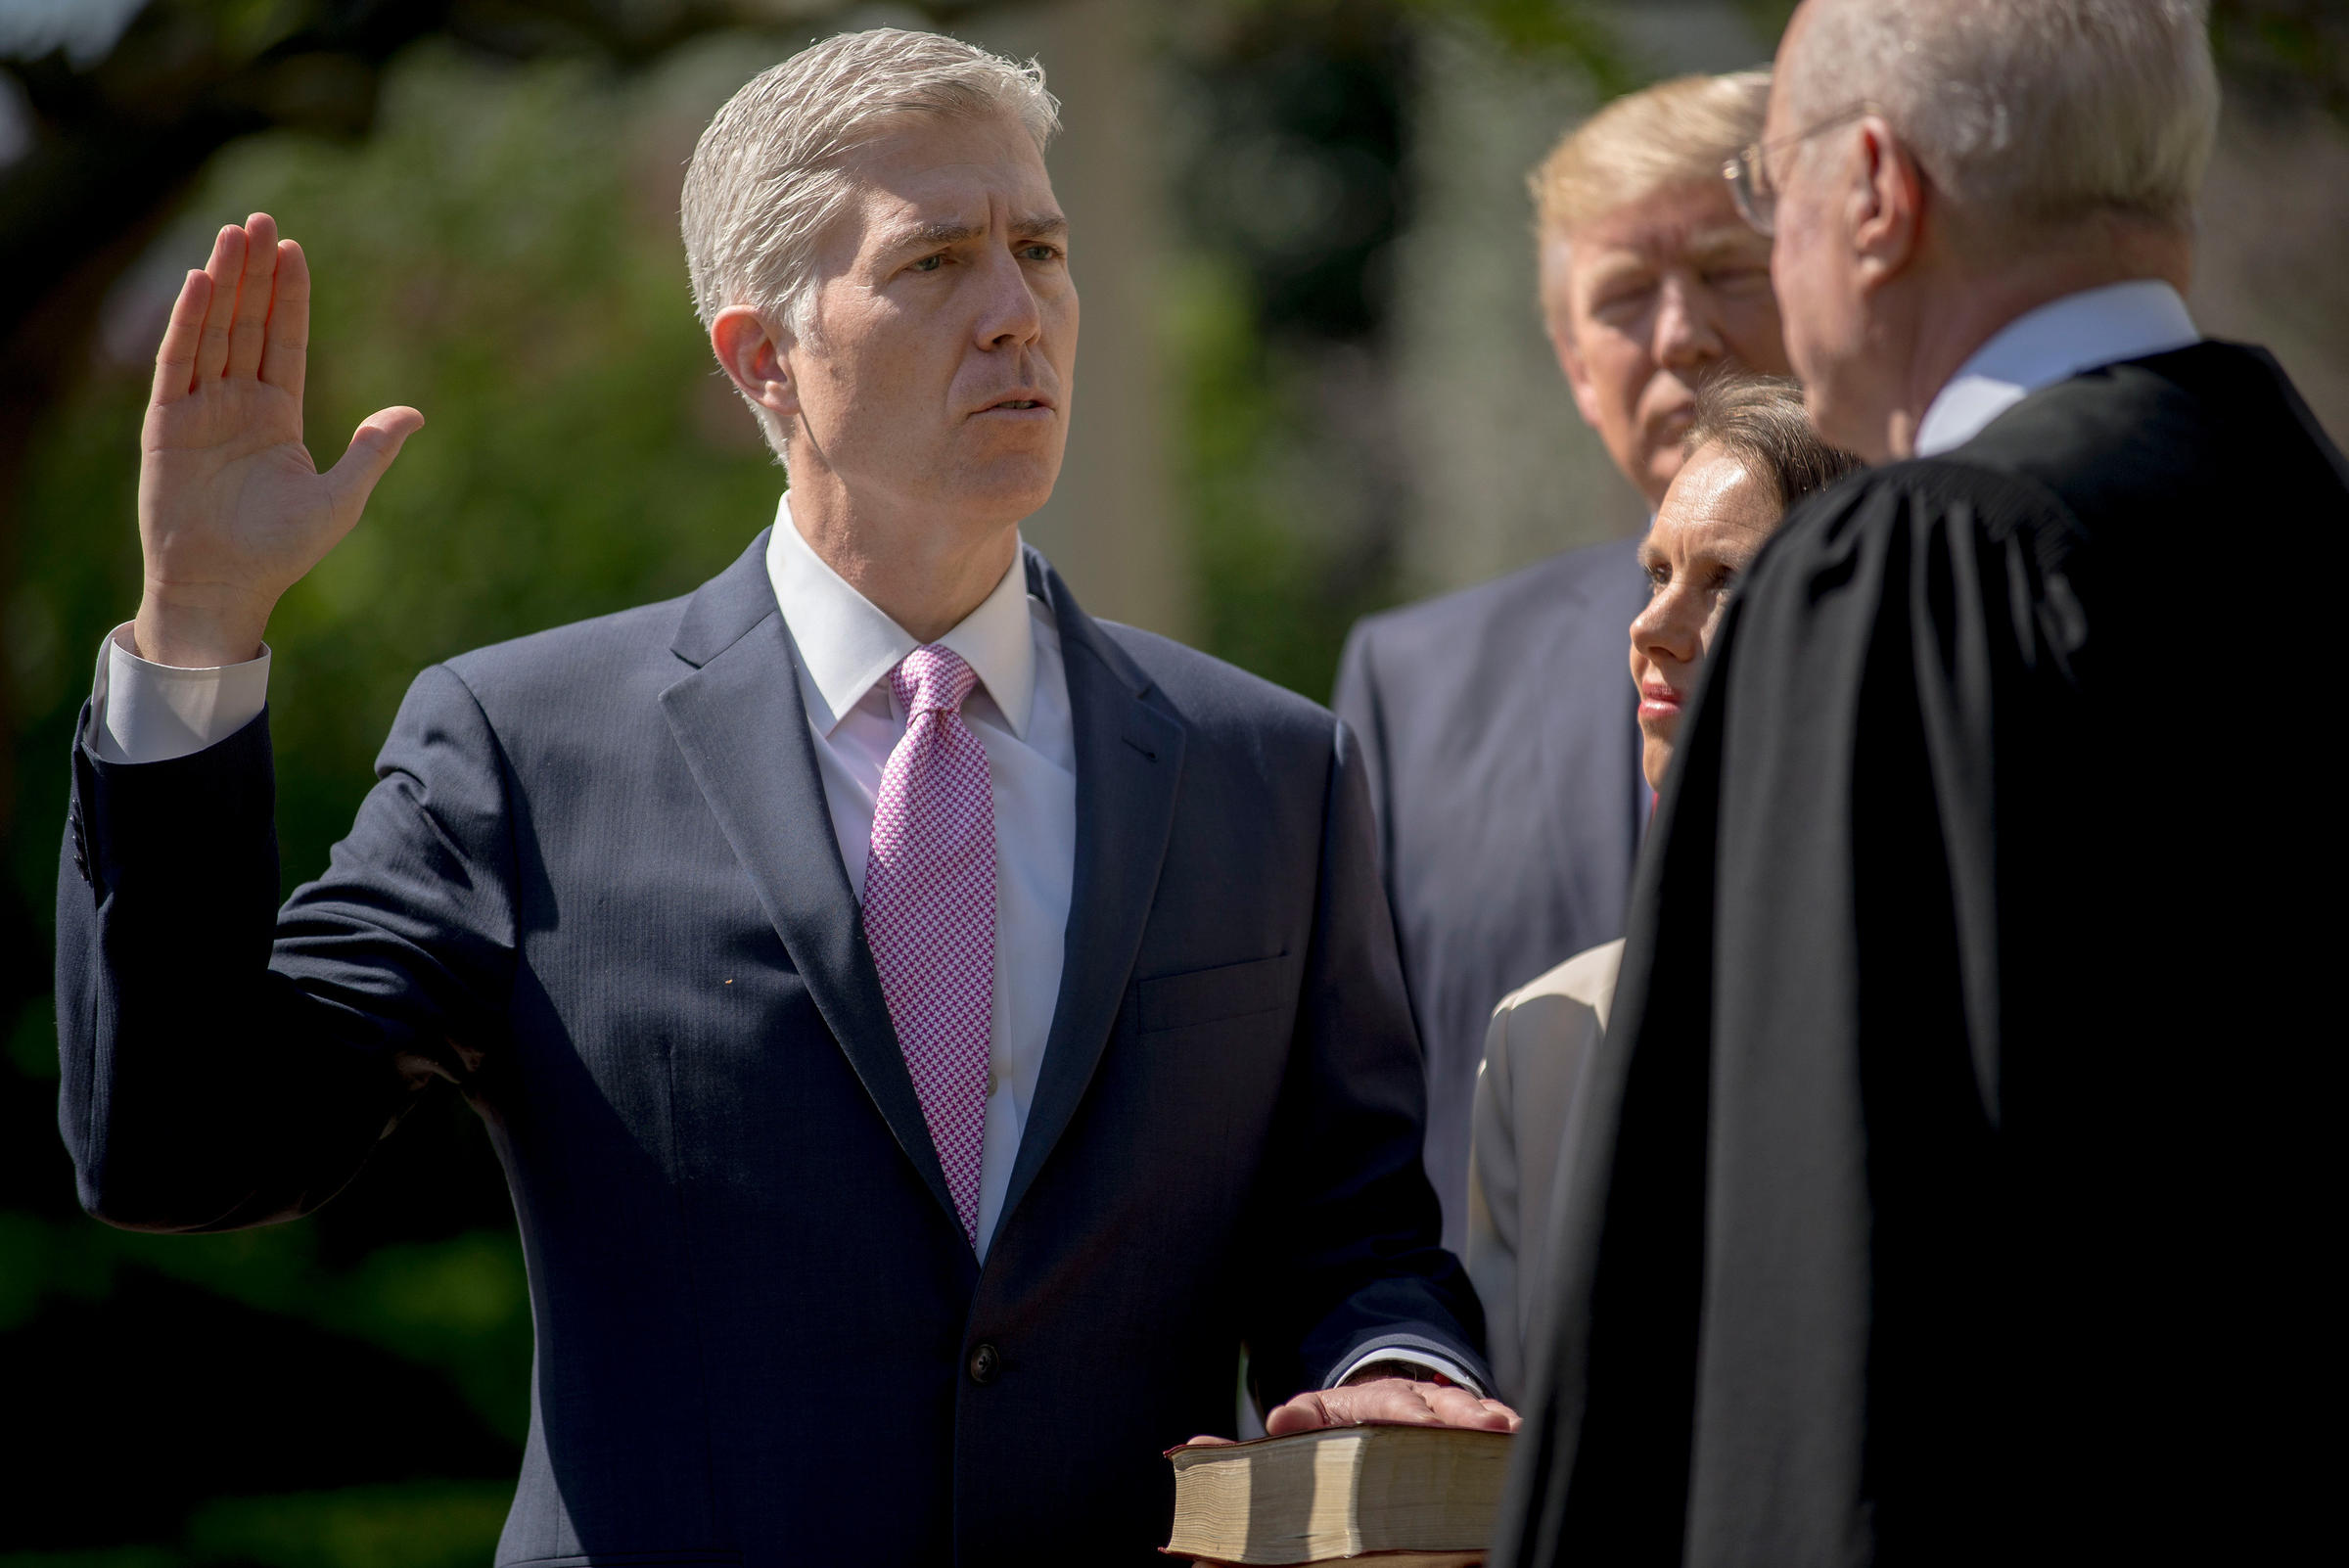 Neil Gorsuch being sworn in as 113th Supreme Court justice